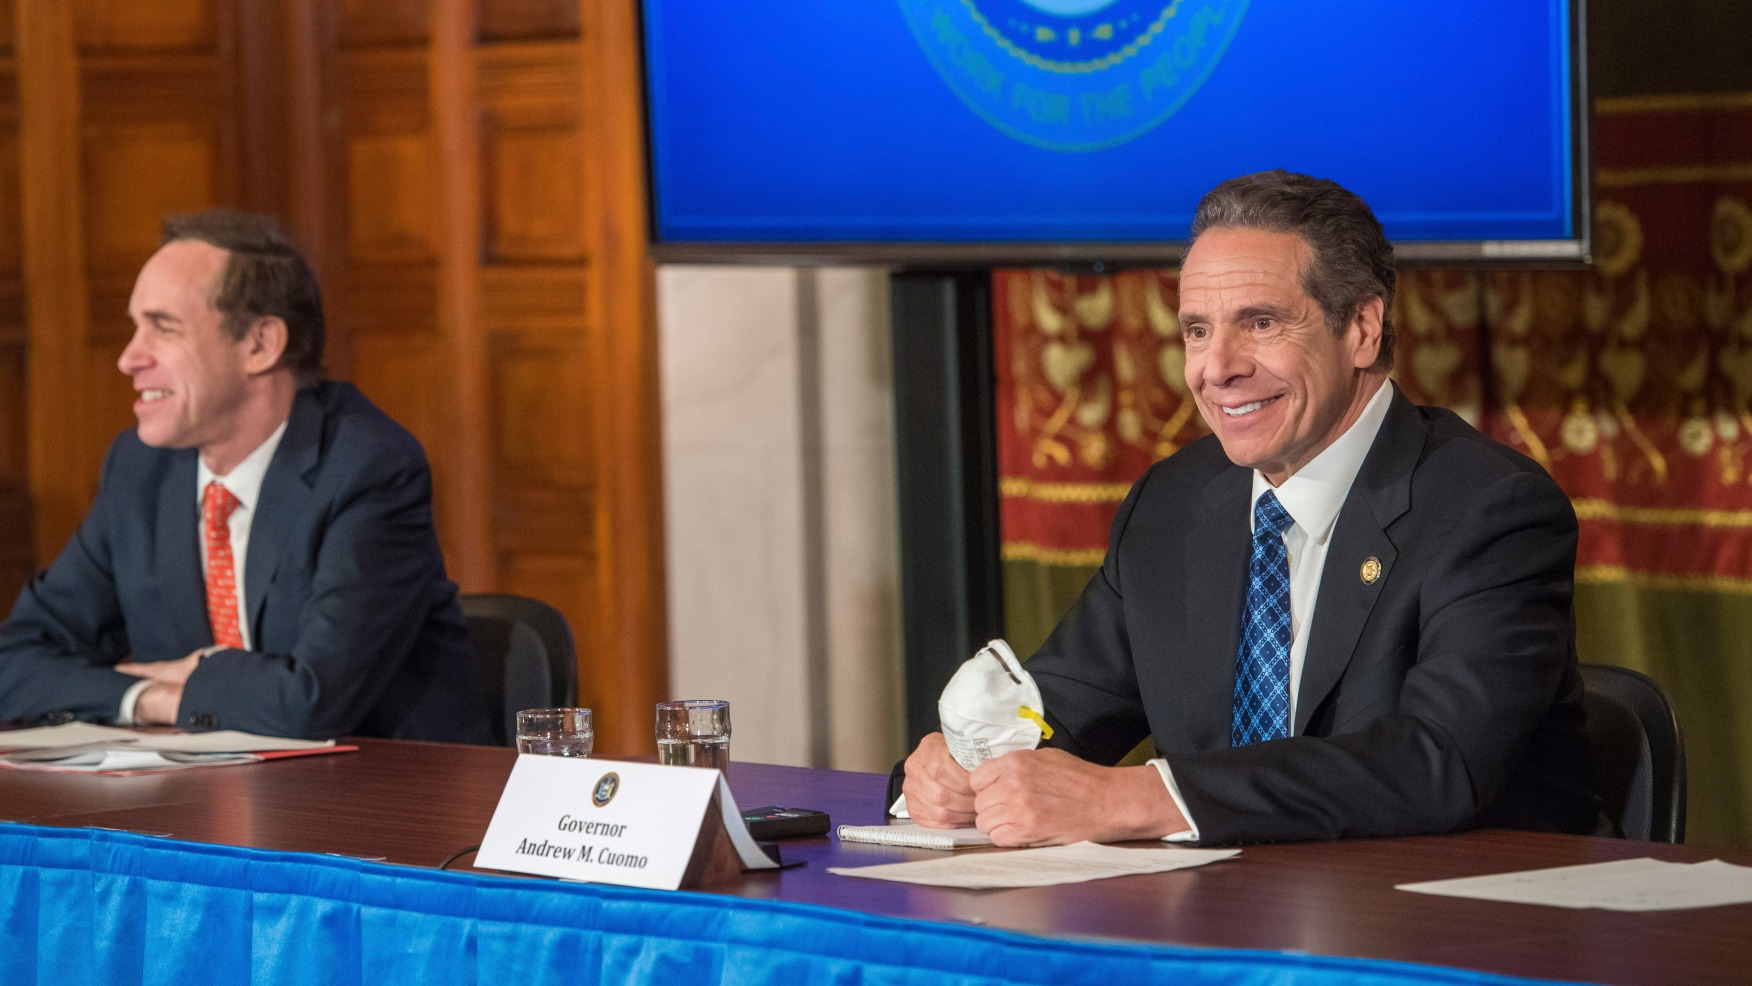 Gift of the Mask: Cuomo lauds retired farmer's gesture ...